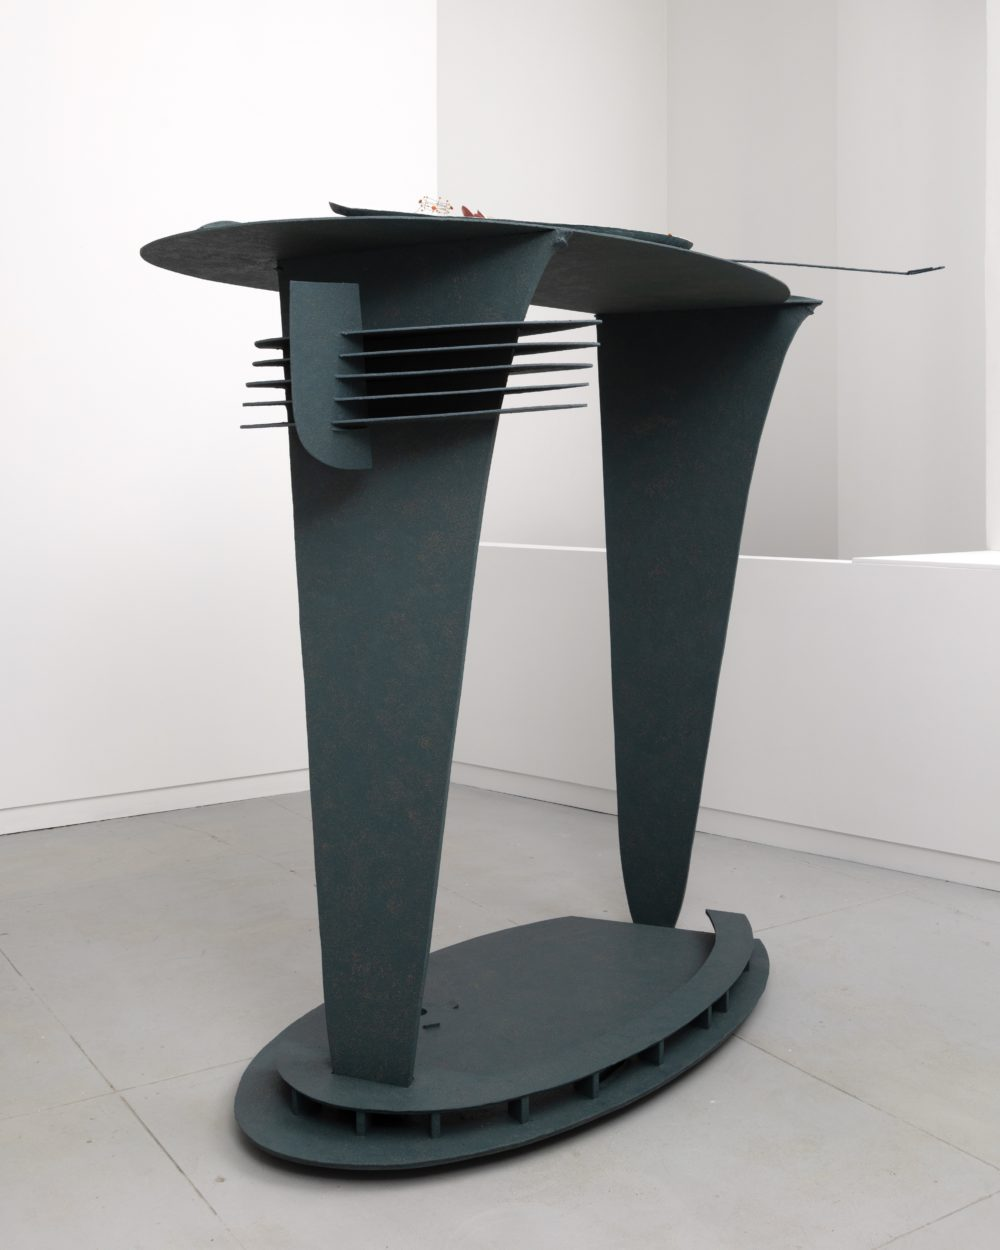 Dark gray sculpture with two legs and an oval base with a flat looking top.